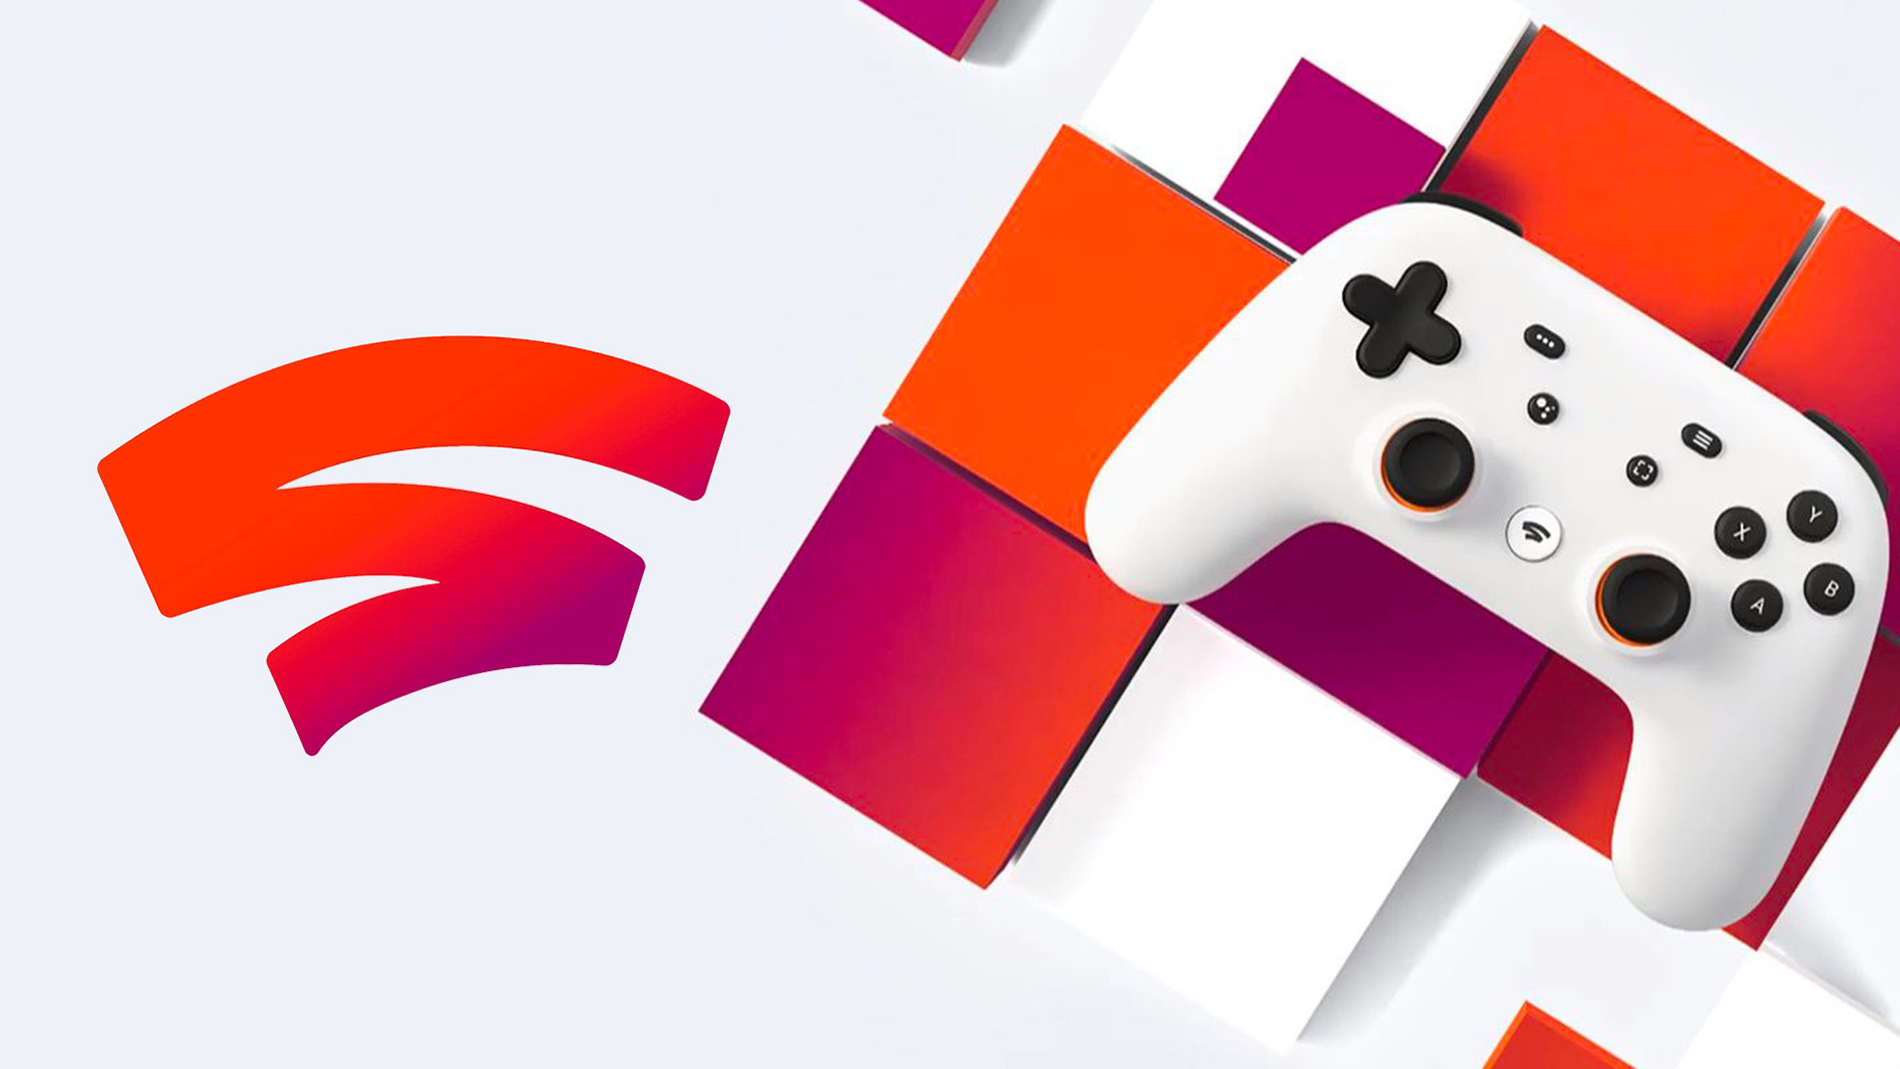 BT partners with Stadia with new broadband offers